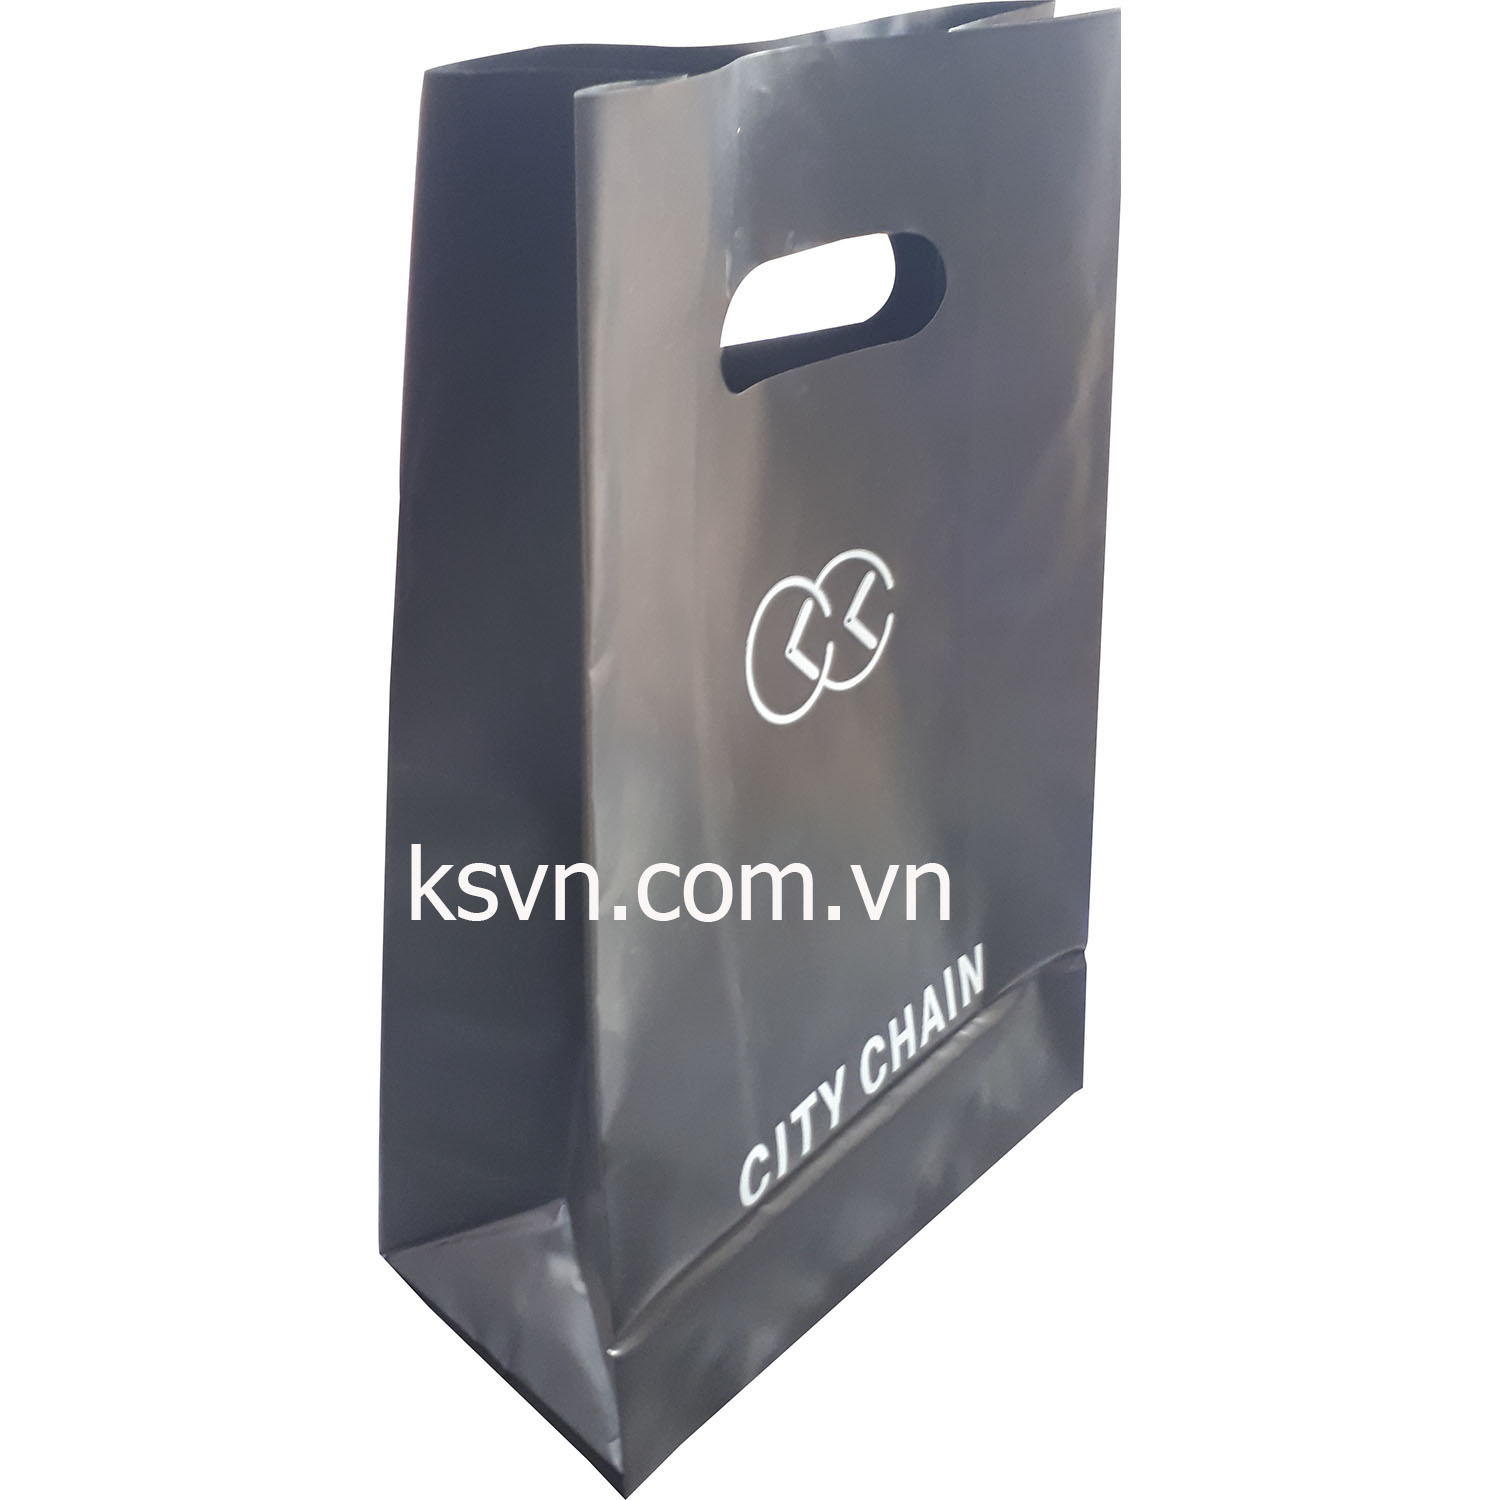 High quality printing and film quality with die cut shopping plastic bag